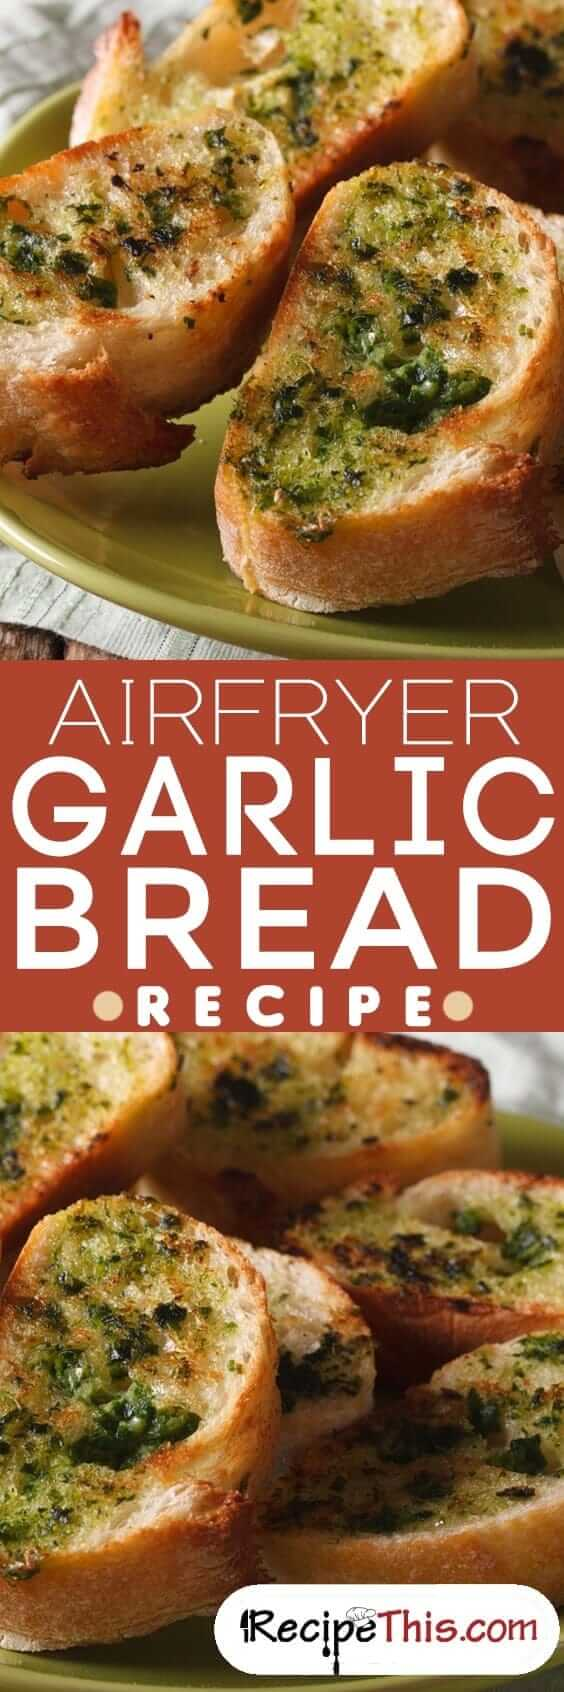 Airfryer Garlic Bread Recipe From RecipeThis.com